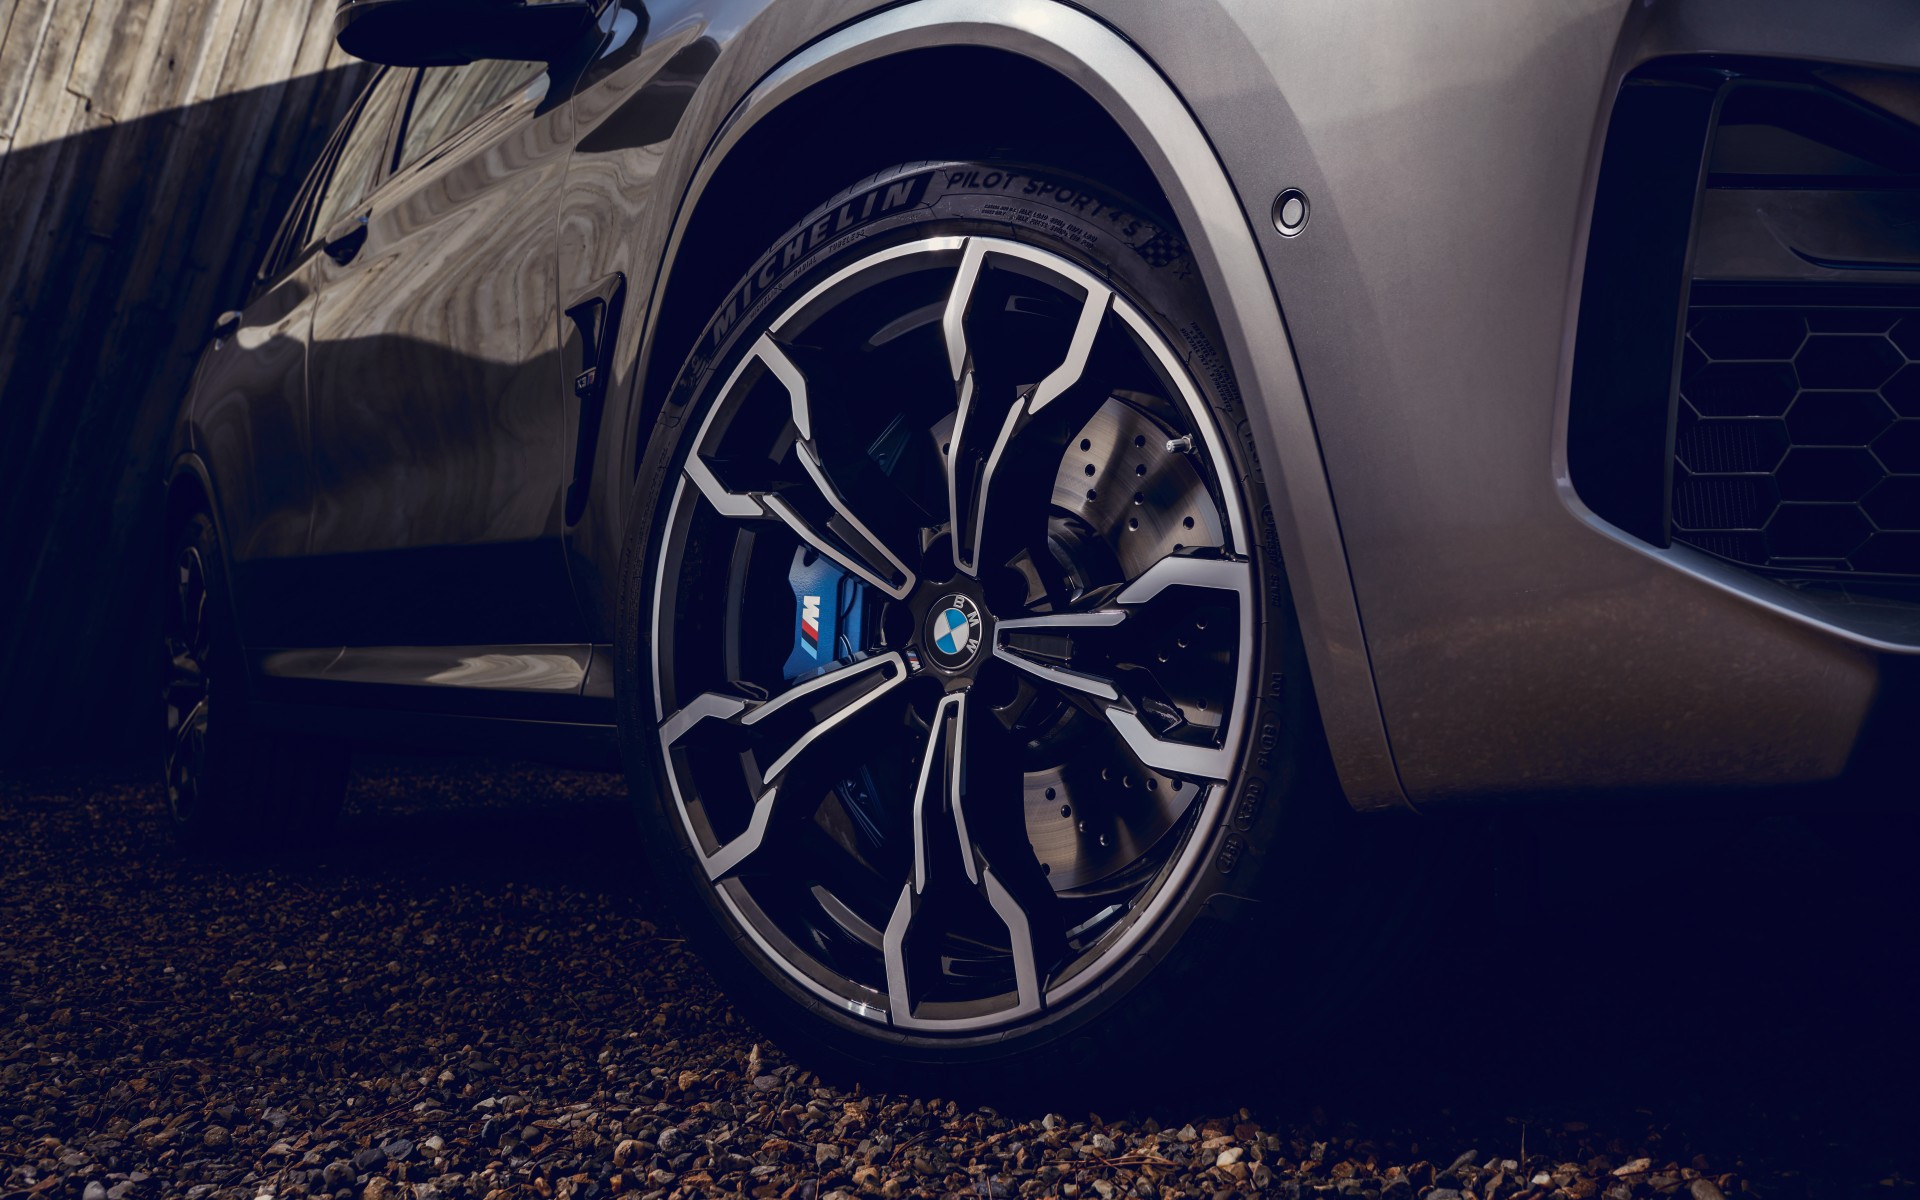 _content_dam_bmw_marketBMW_M_common_topics_magazine-article-pool_2019_bmw-m-wallpaper_bmw-x3-m-gallery-03-mi.jpg